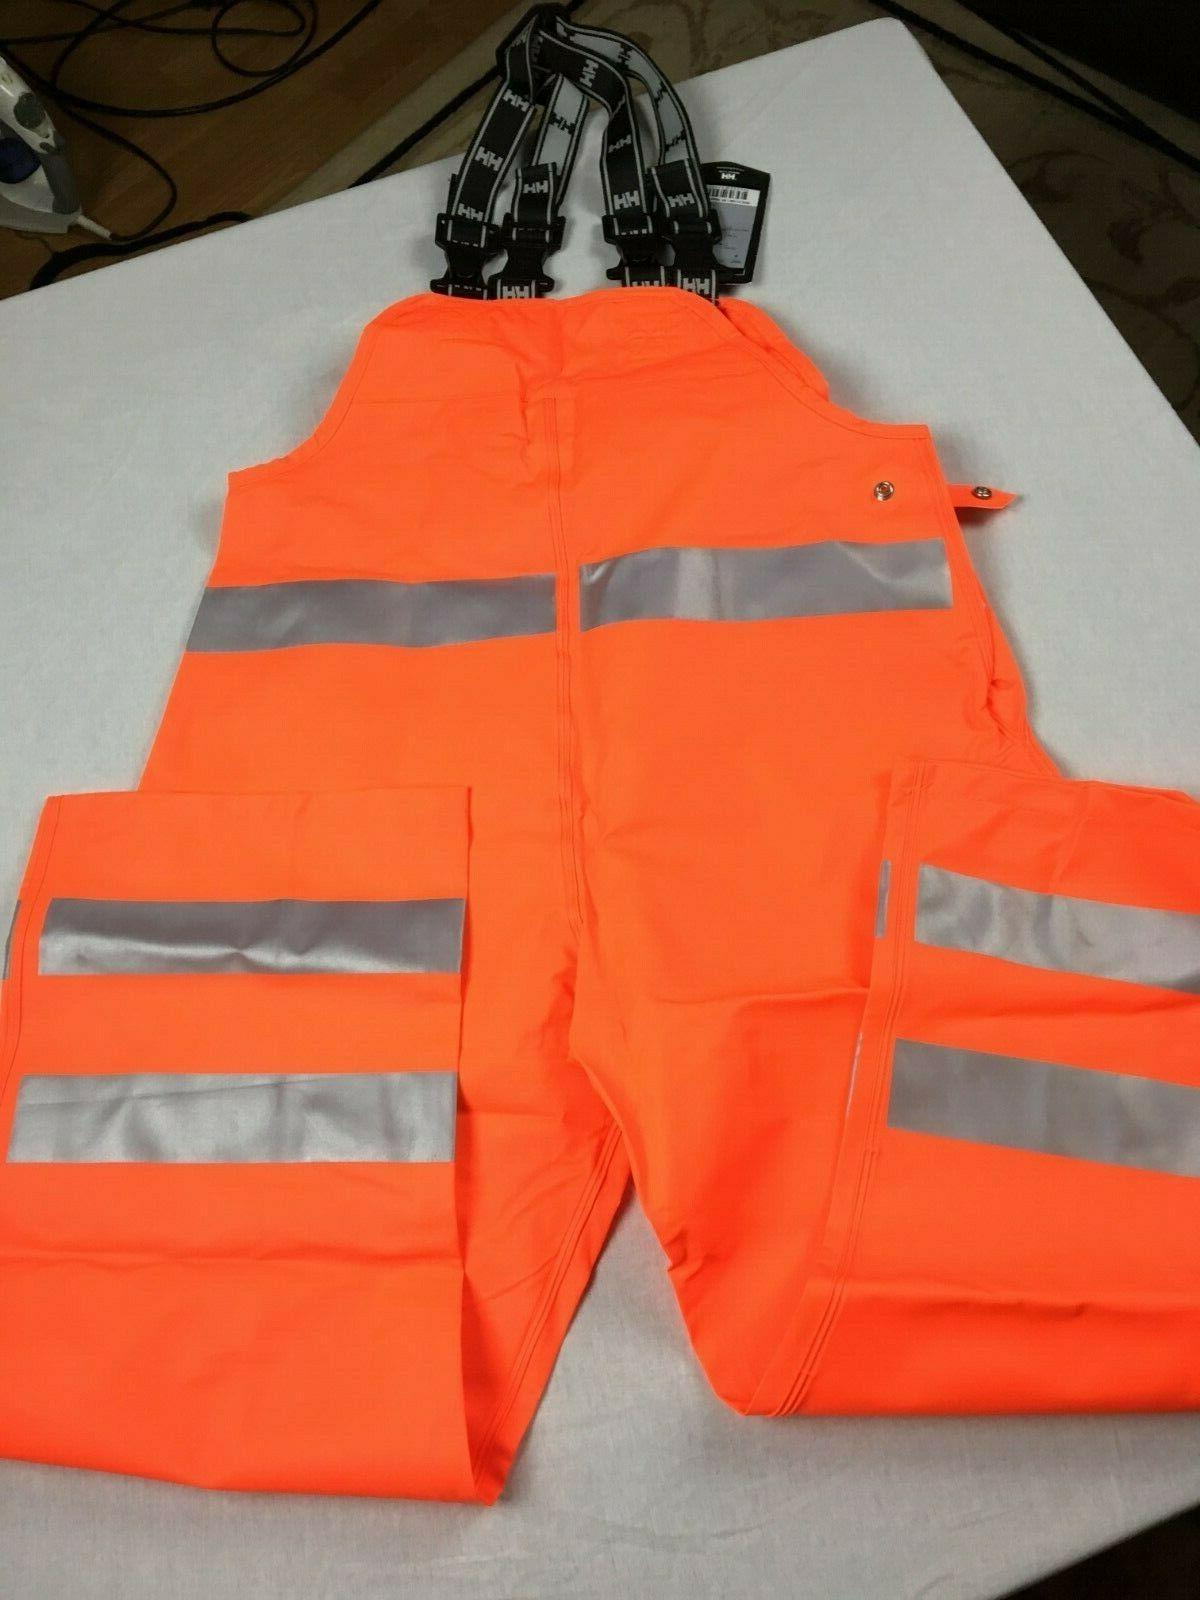 workwear stavern security bib pents sz s